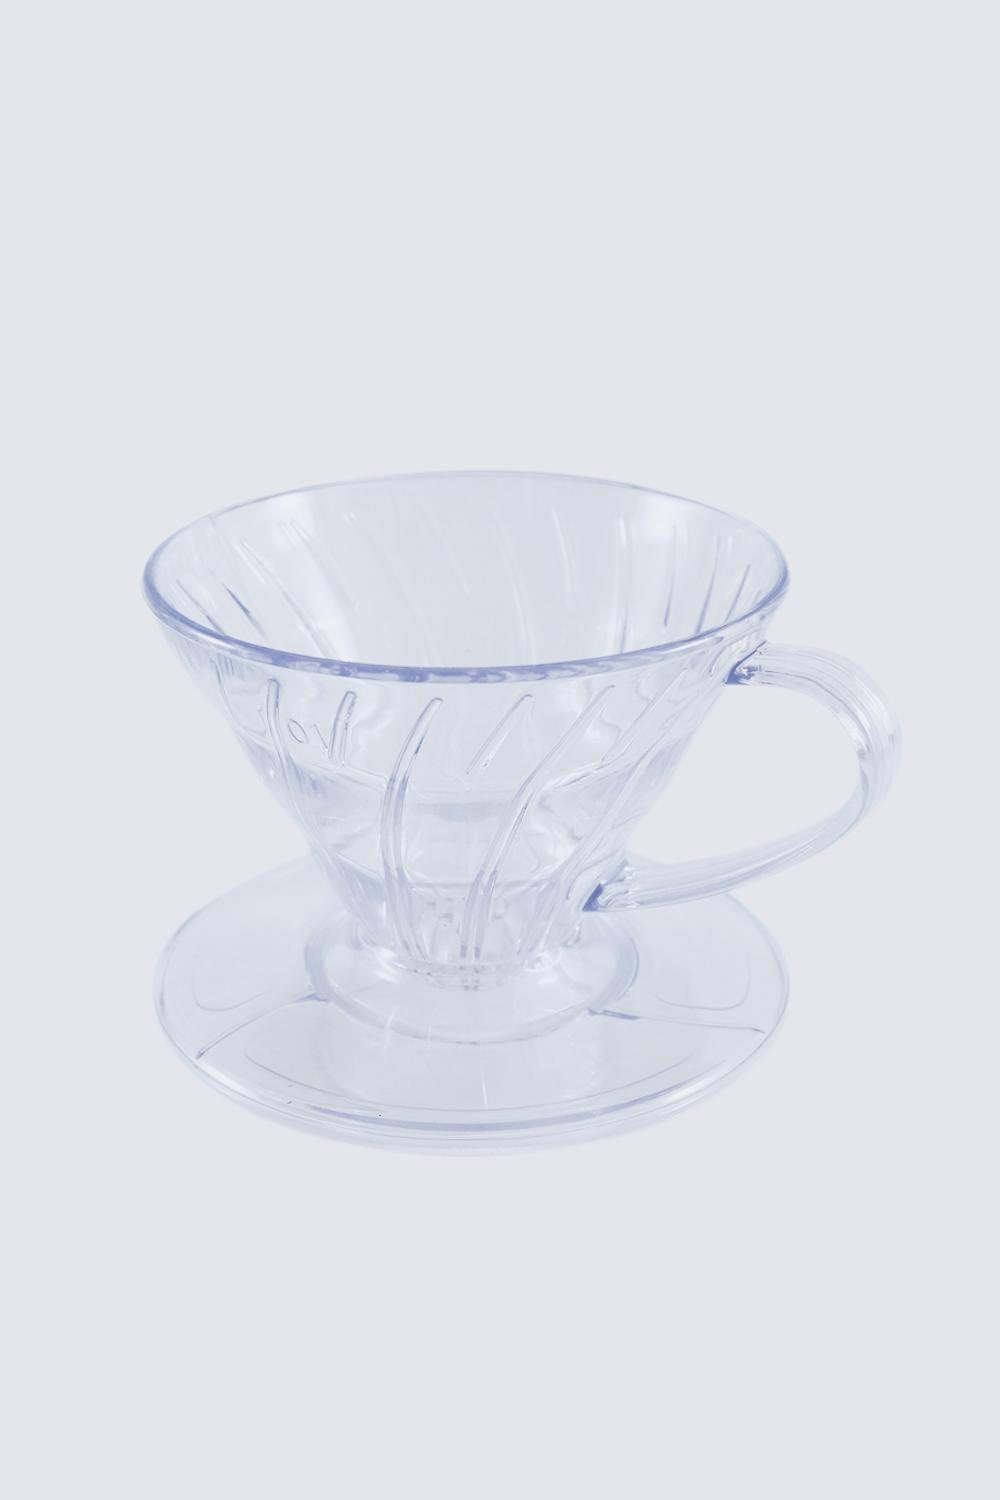 Dripper V60 Acrylic Transparant Size 01 Pour Over Dripper